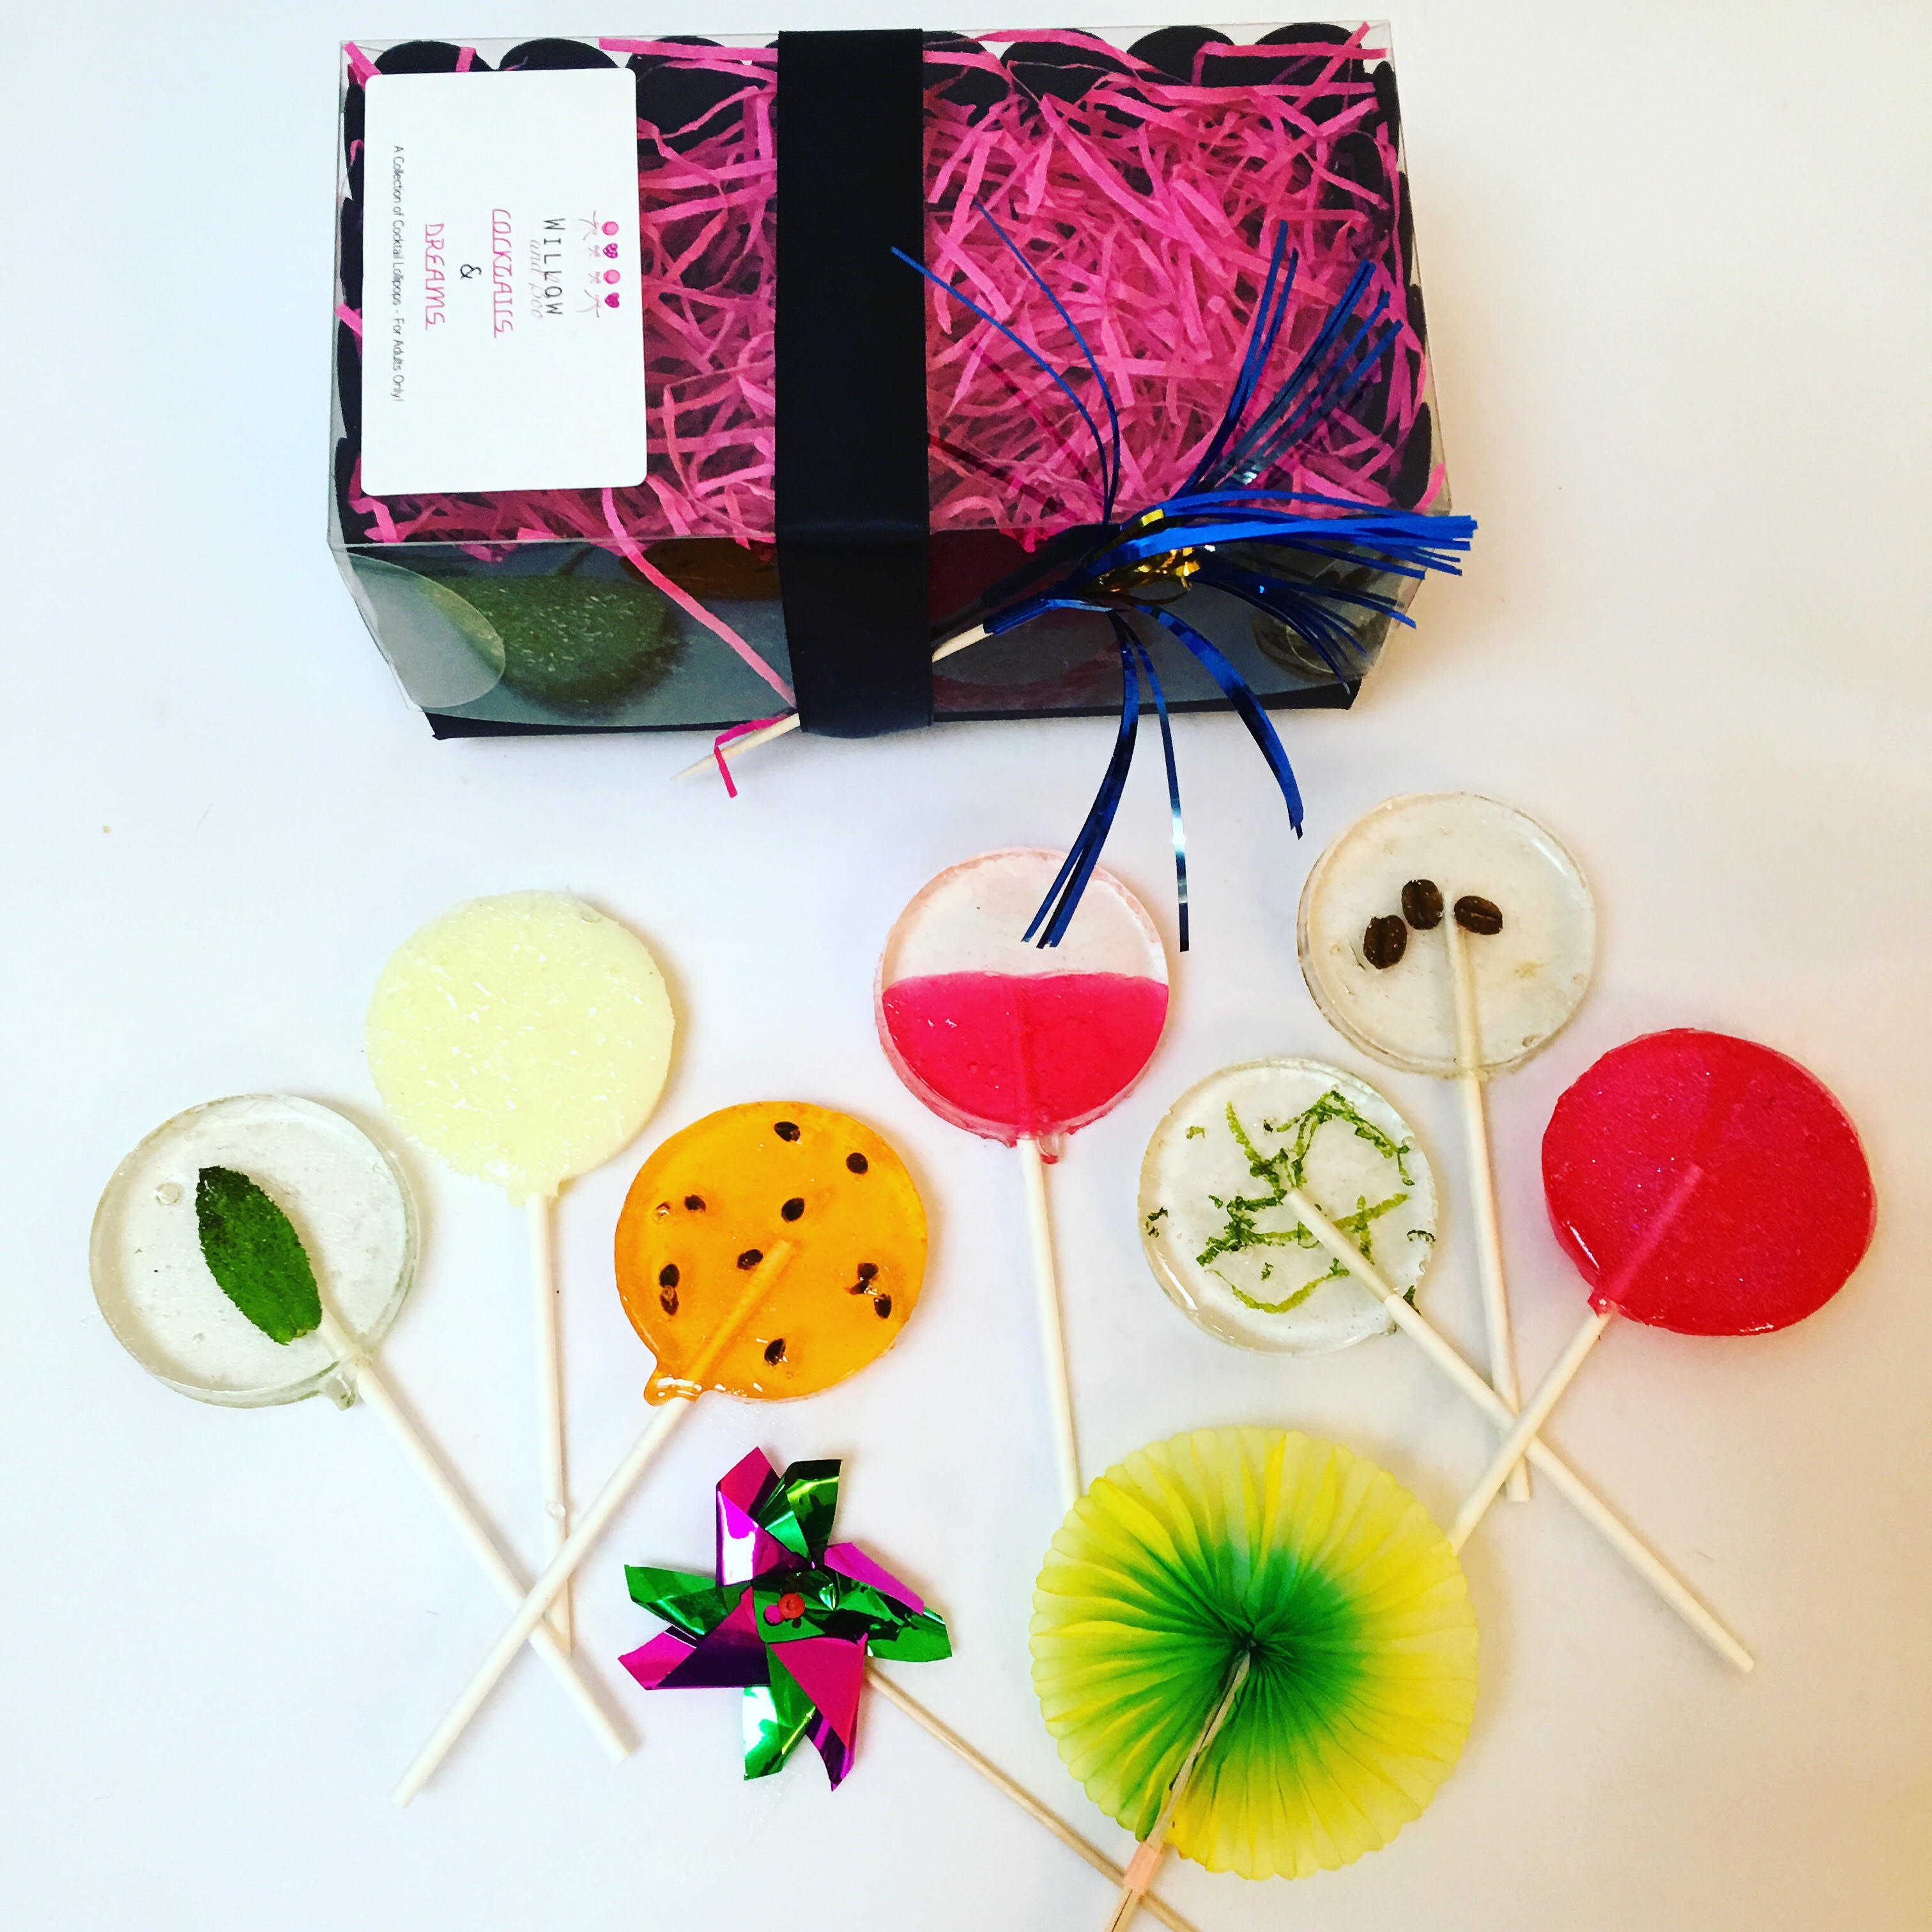 Party bag ideas; Handmade lollipops by Willow and Boo.